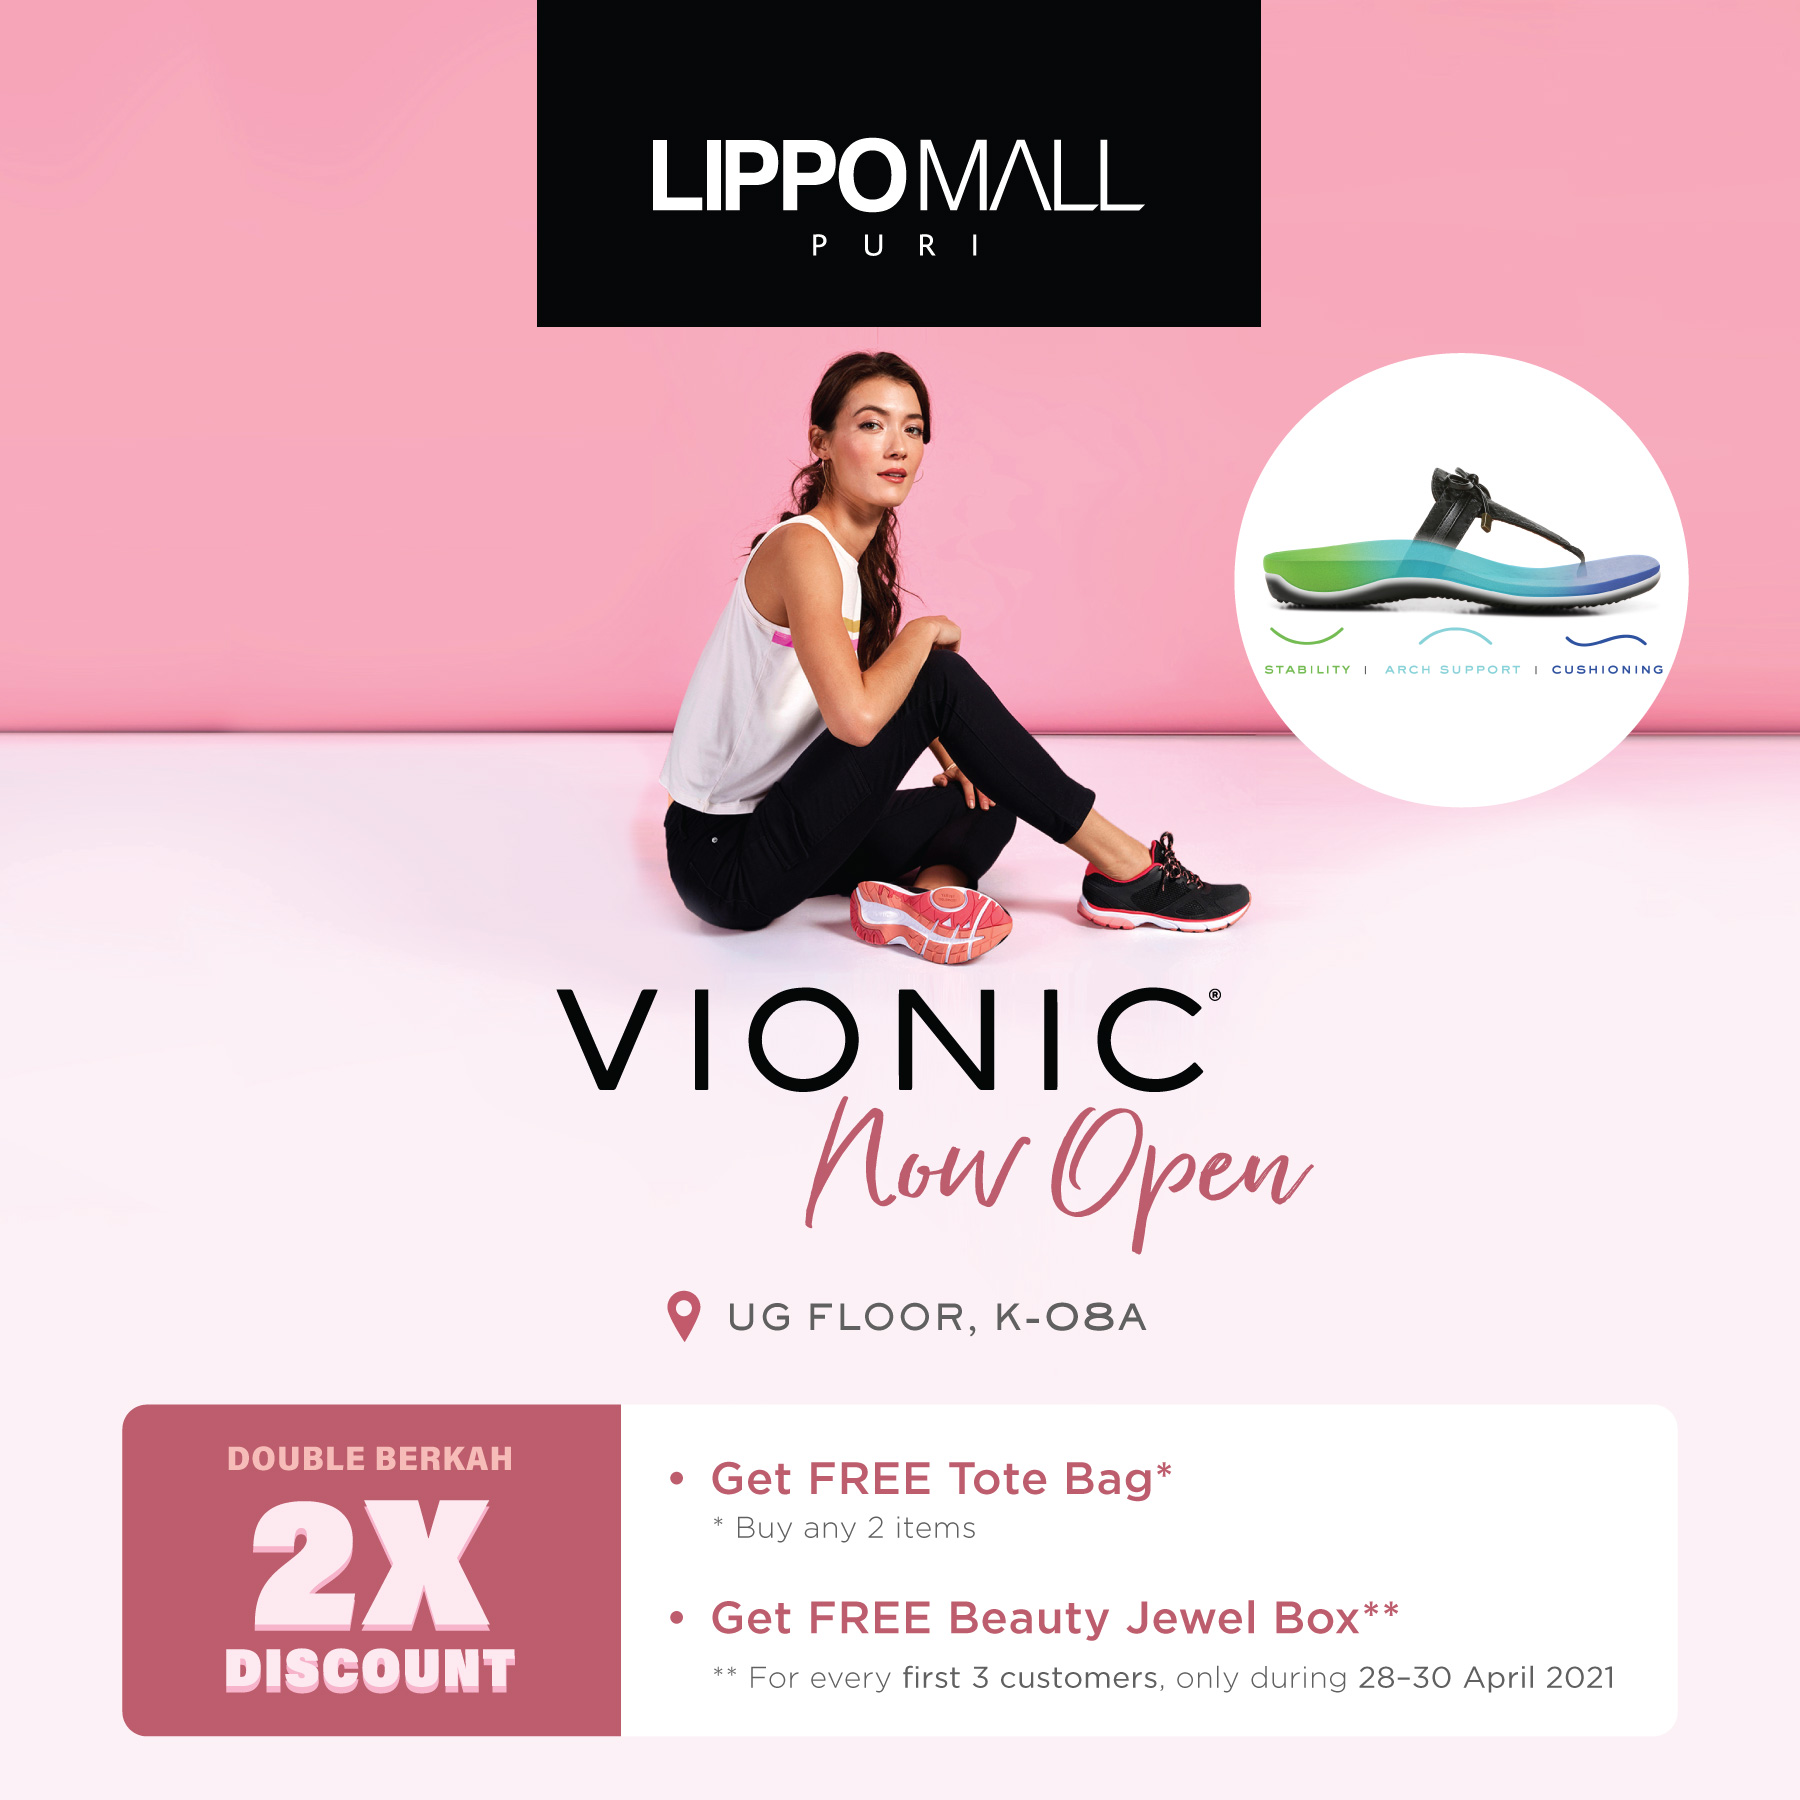 Vionic Now Open in lippo mall puri st. moritz